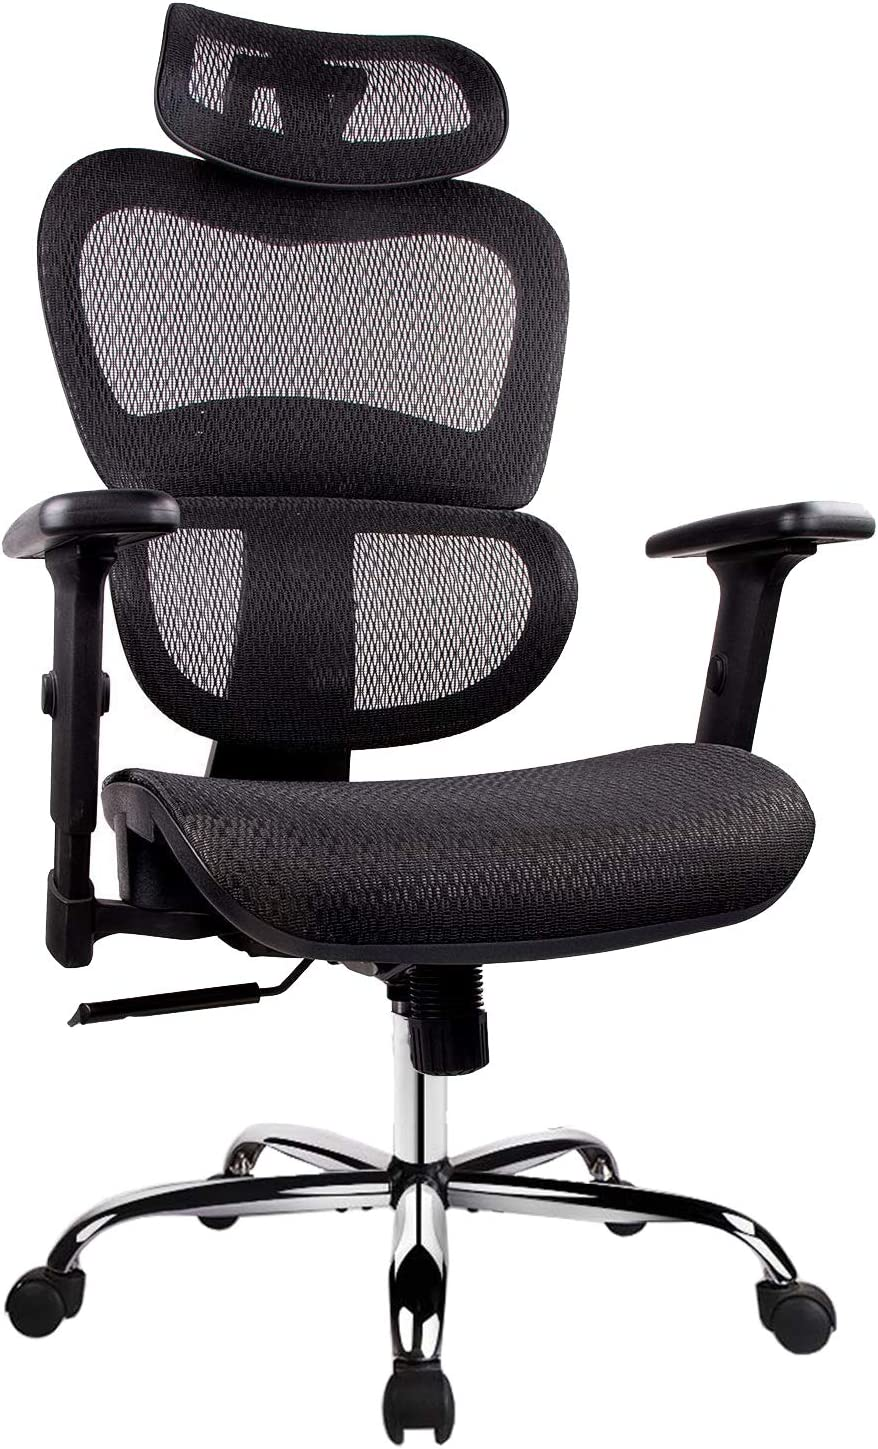 Office Chair, Ergonomics Mesh Chair Computer Chair Desk Chair High Back Chair w Adjustable Headrest and Armrest